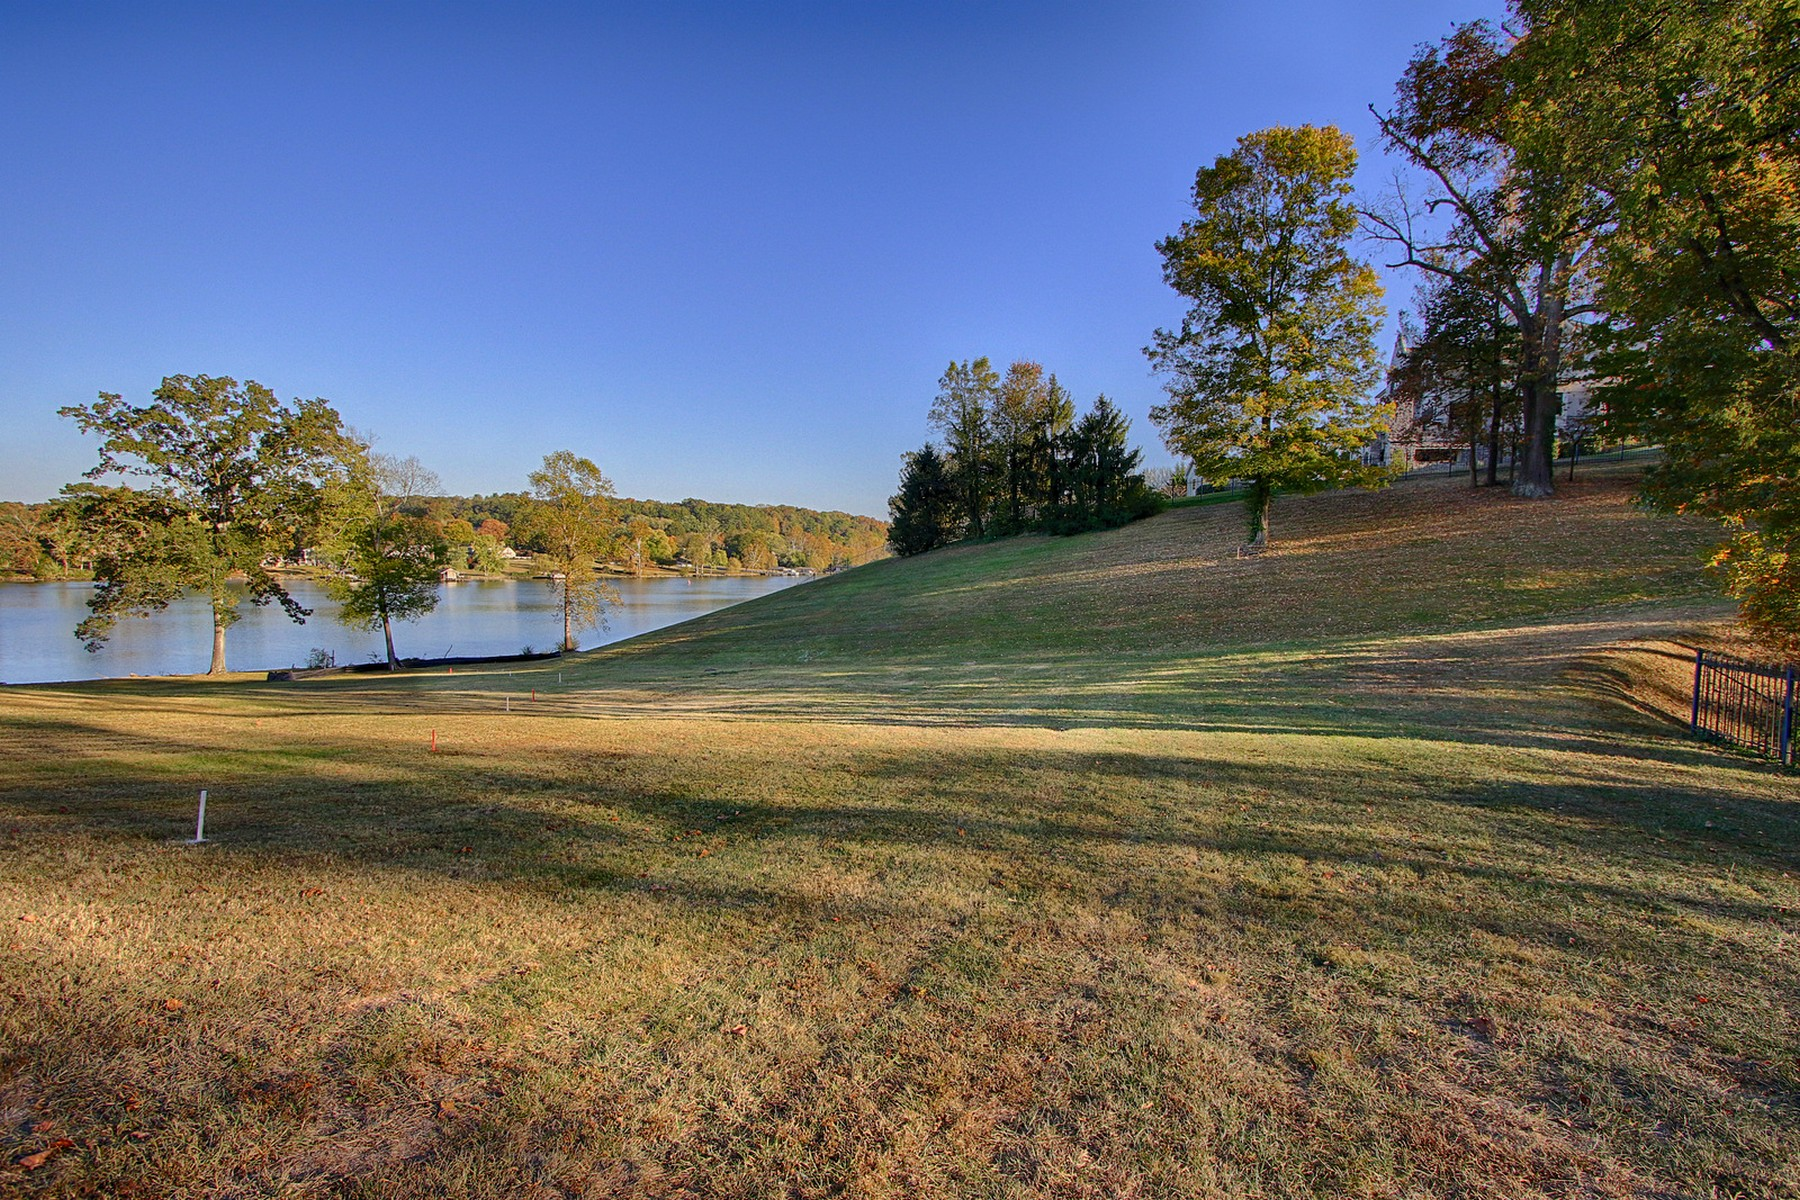 Land for Sale at Villa Estates At Lyons View Pike 5656 Lyons View Pike Lot #3 Knoxville, Tennessee 37919 United States